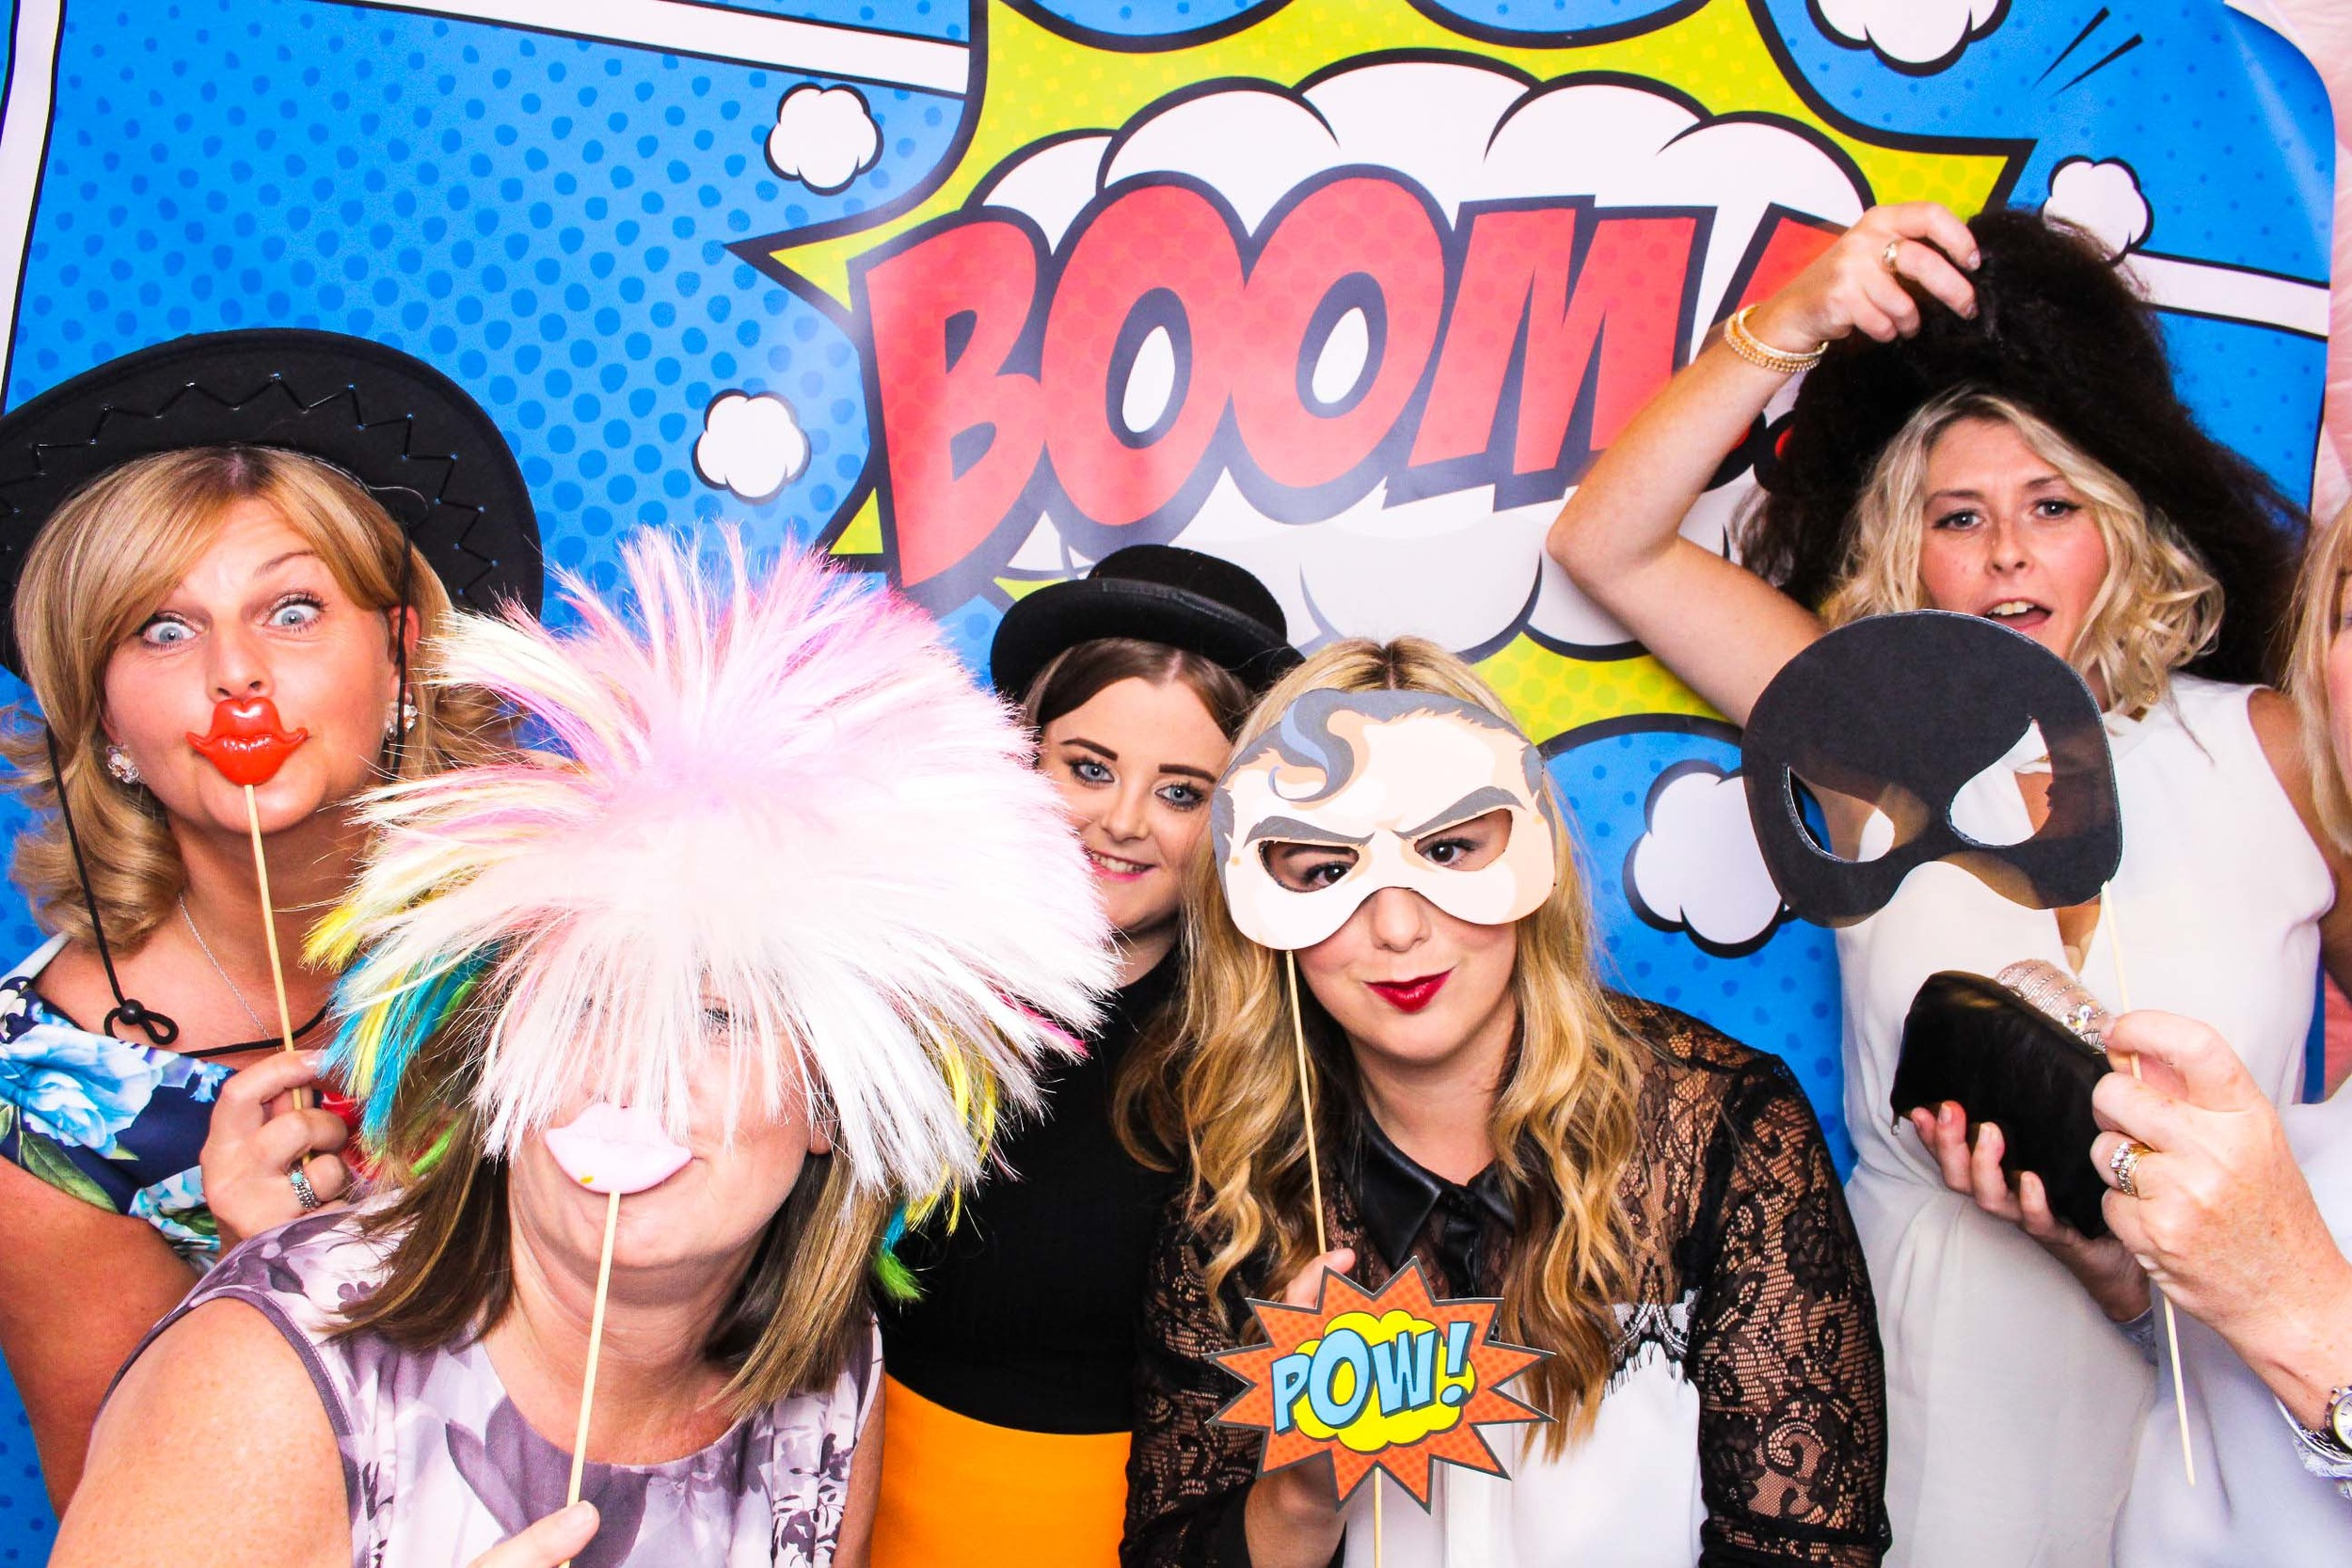 Fotoauto Photo Booth Hire - Shop Direct-27.jpg